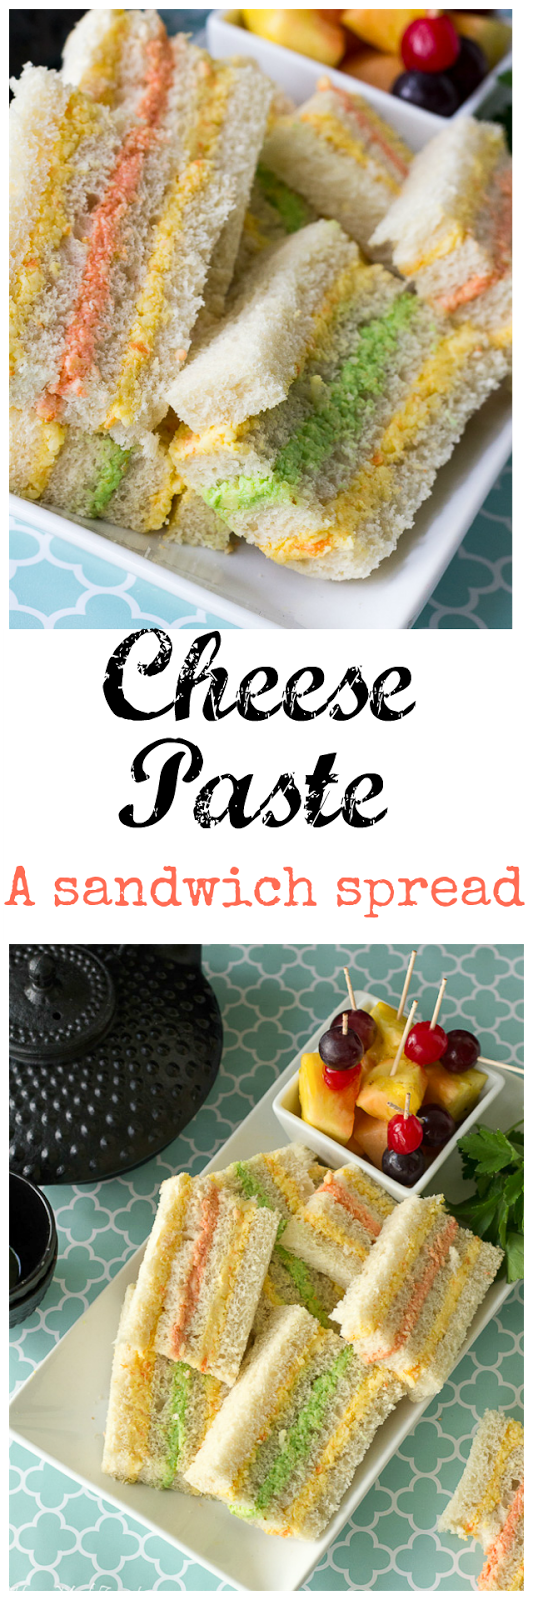 Cheese Paste Spread - A Caribbean cheese spread filled with flavors of mustard, mayonnaise and pepper sauce